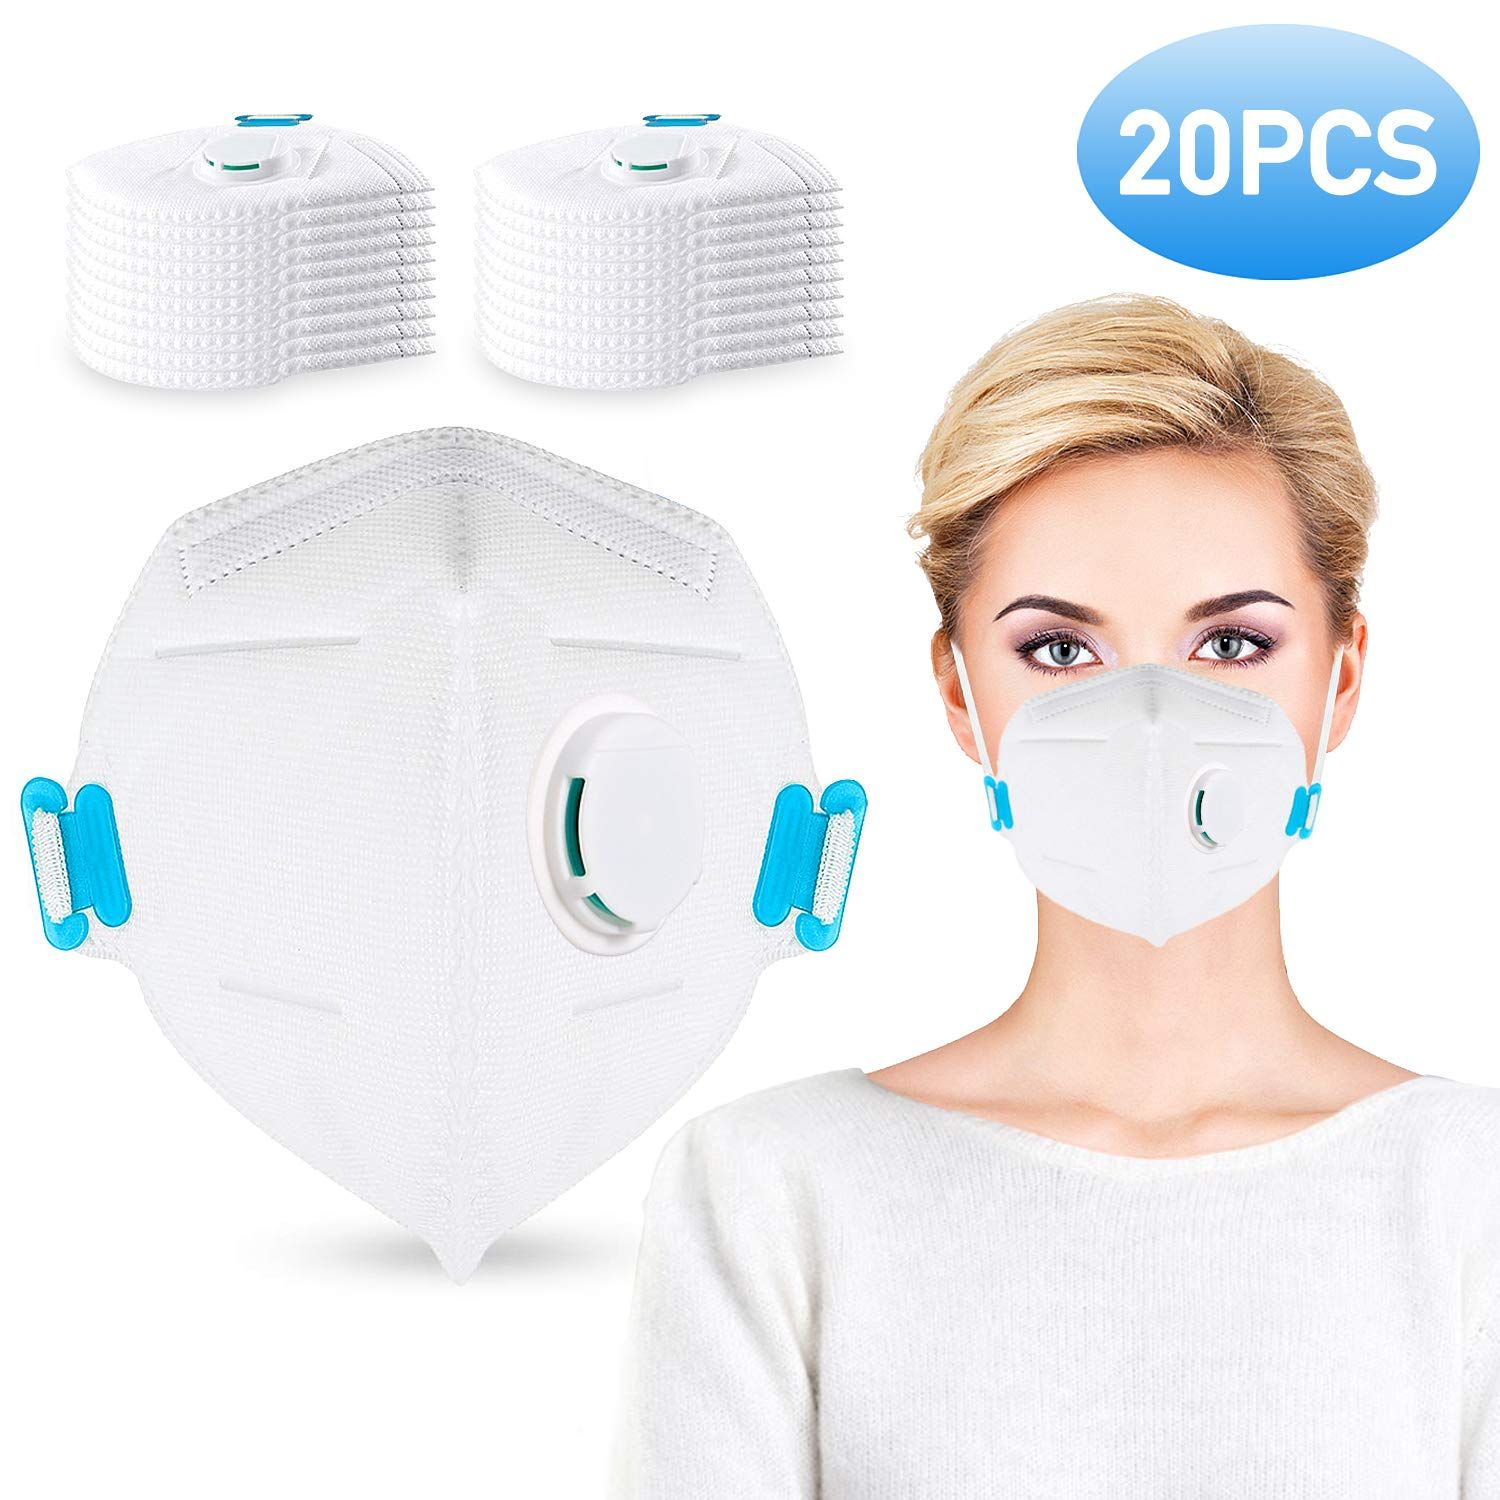 Dust Mask Respirator N95 Face Mask Disposable in